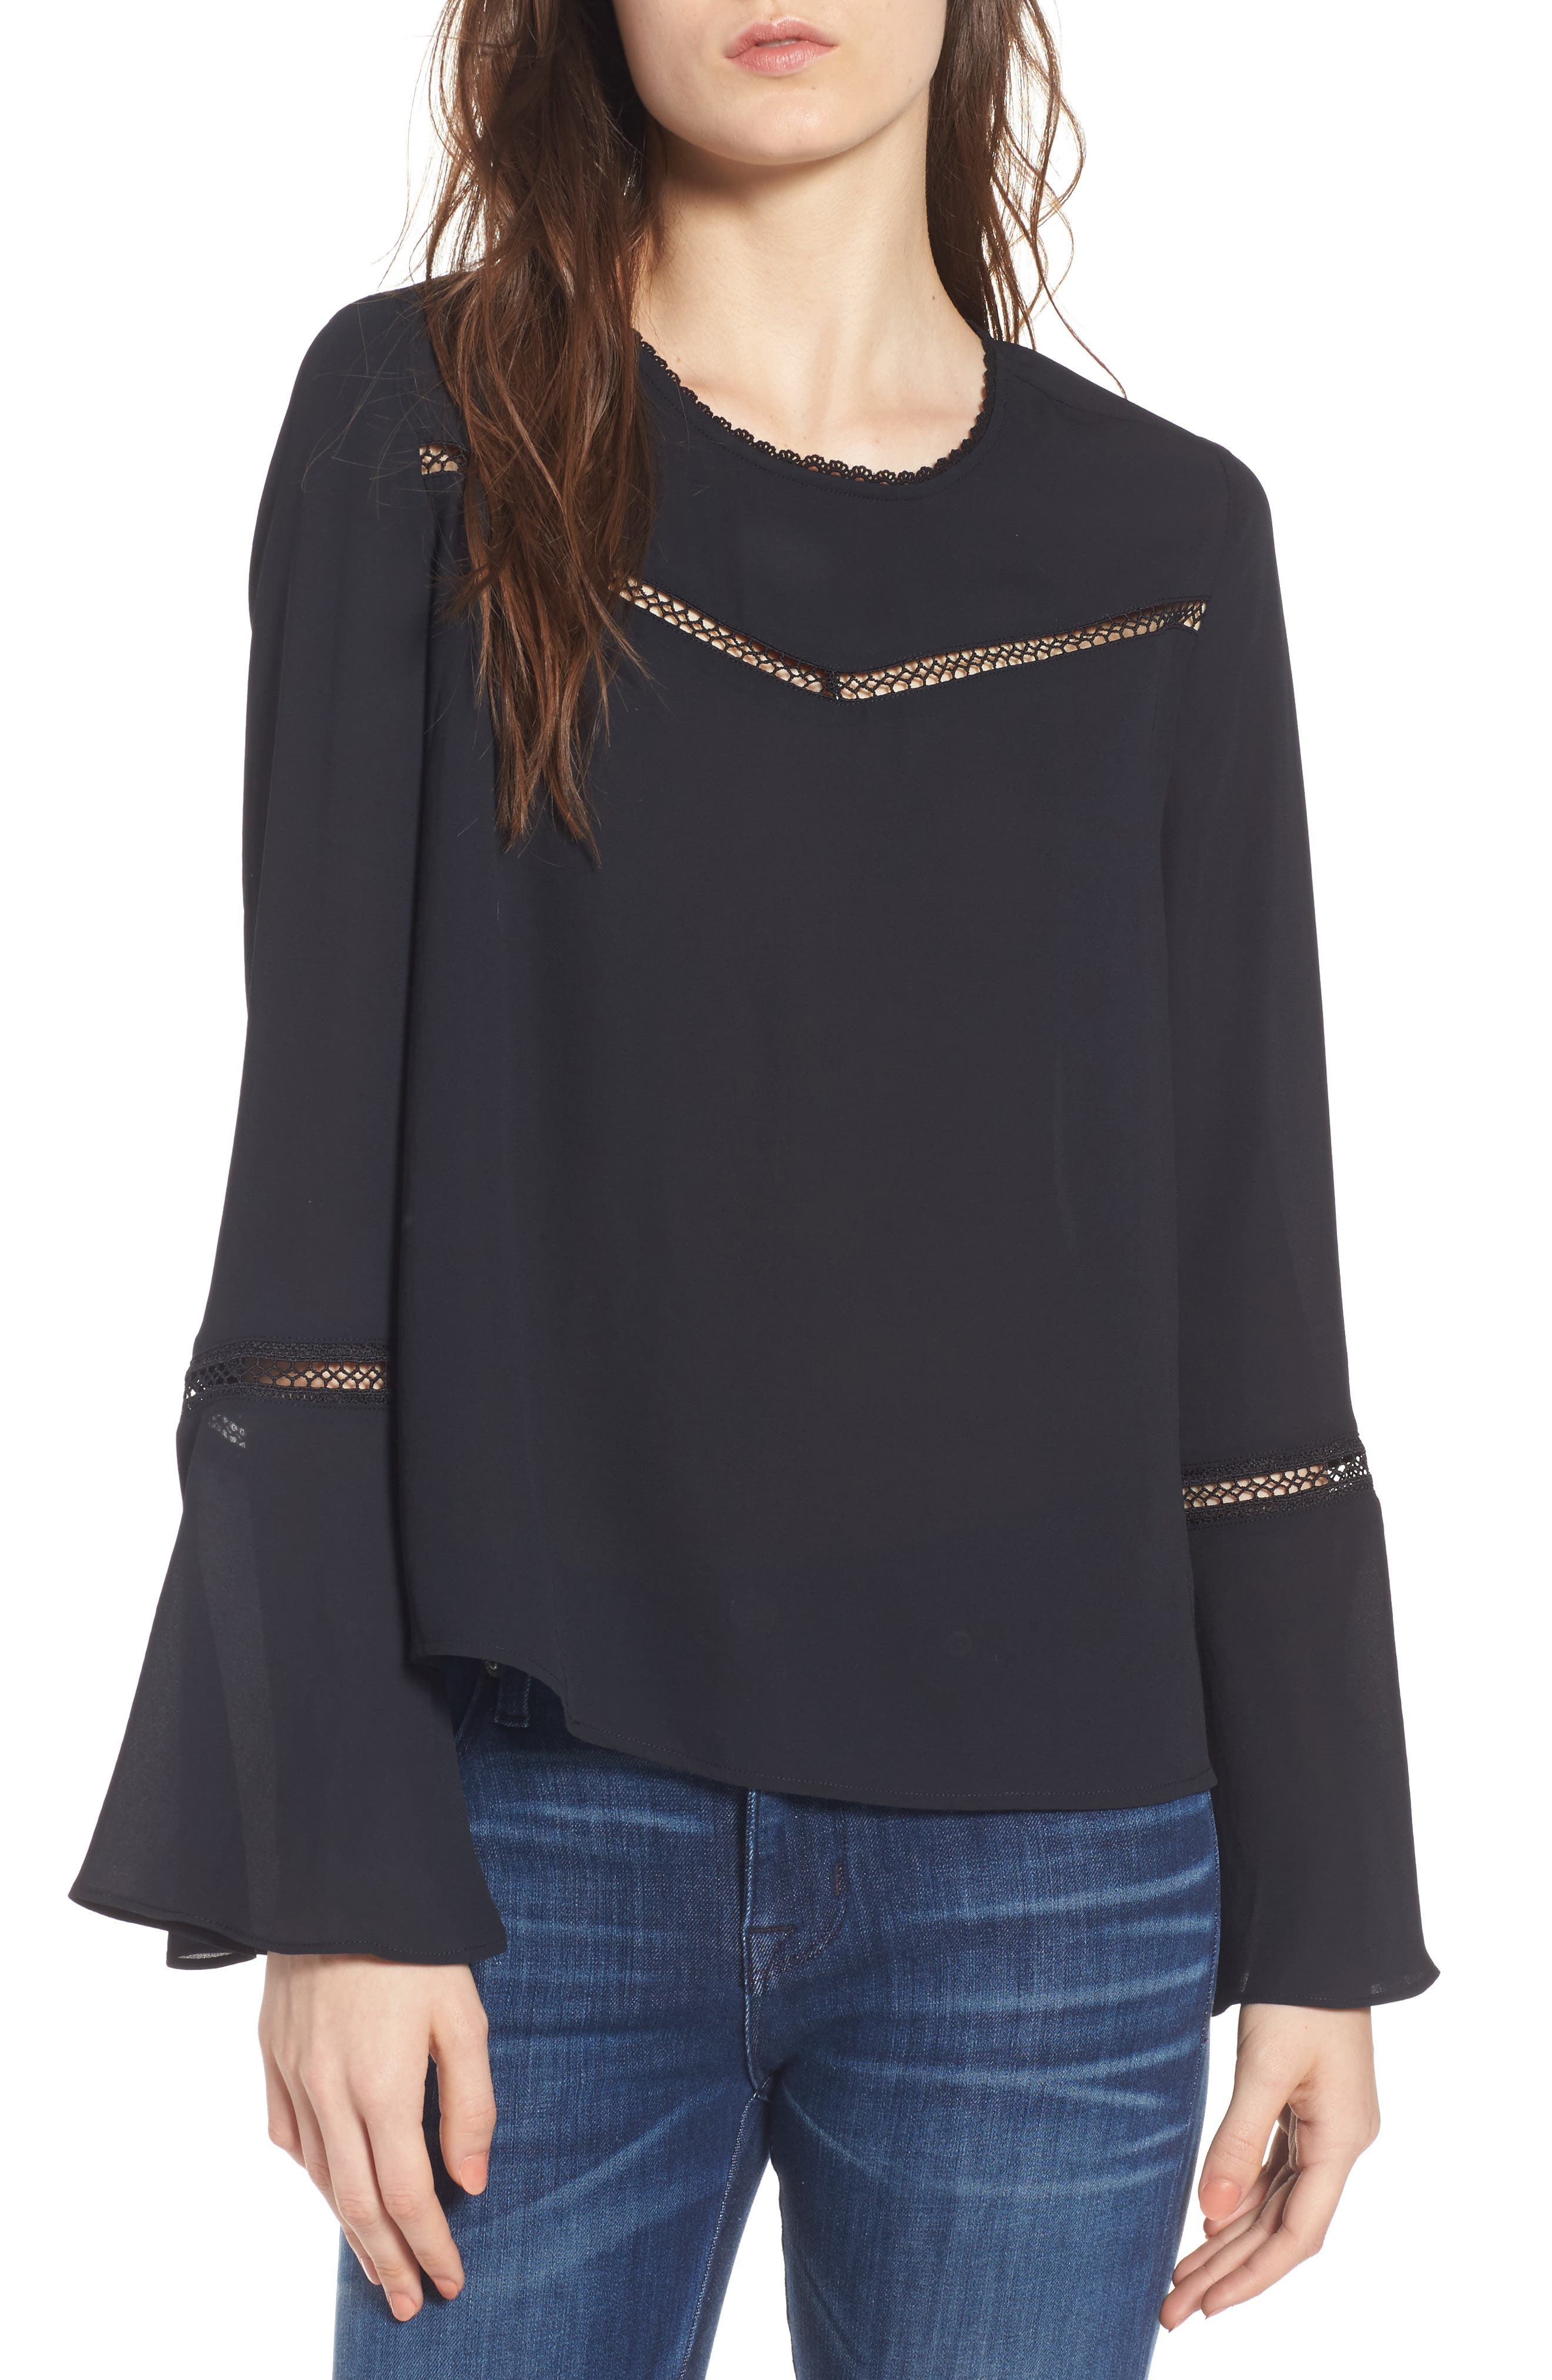 Chava Bell Sleeve Top,                             Main thumbnail 1, color,                             001